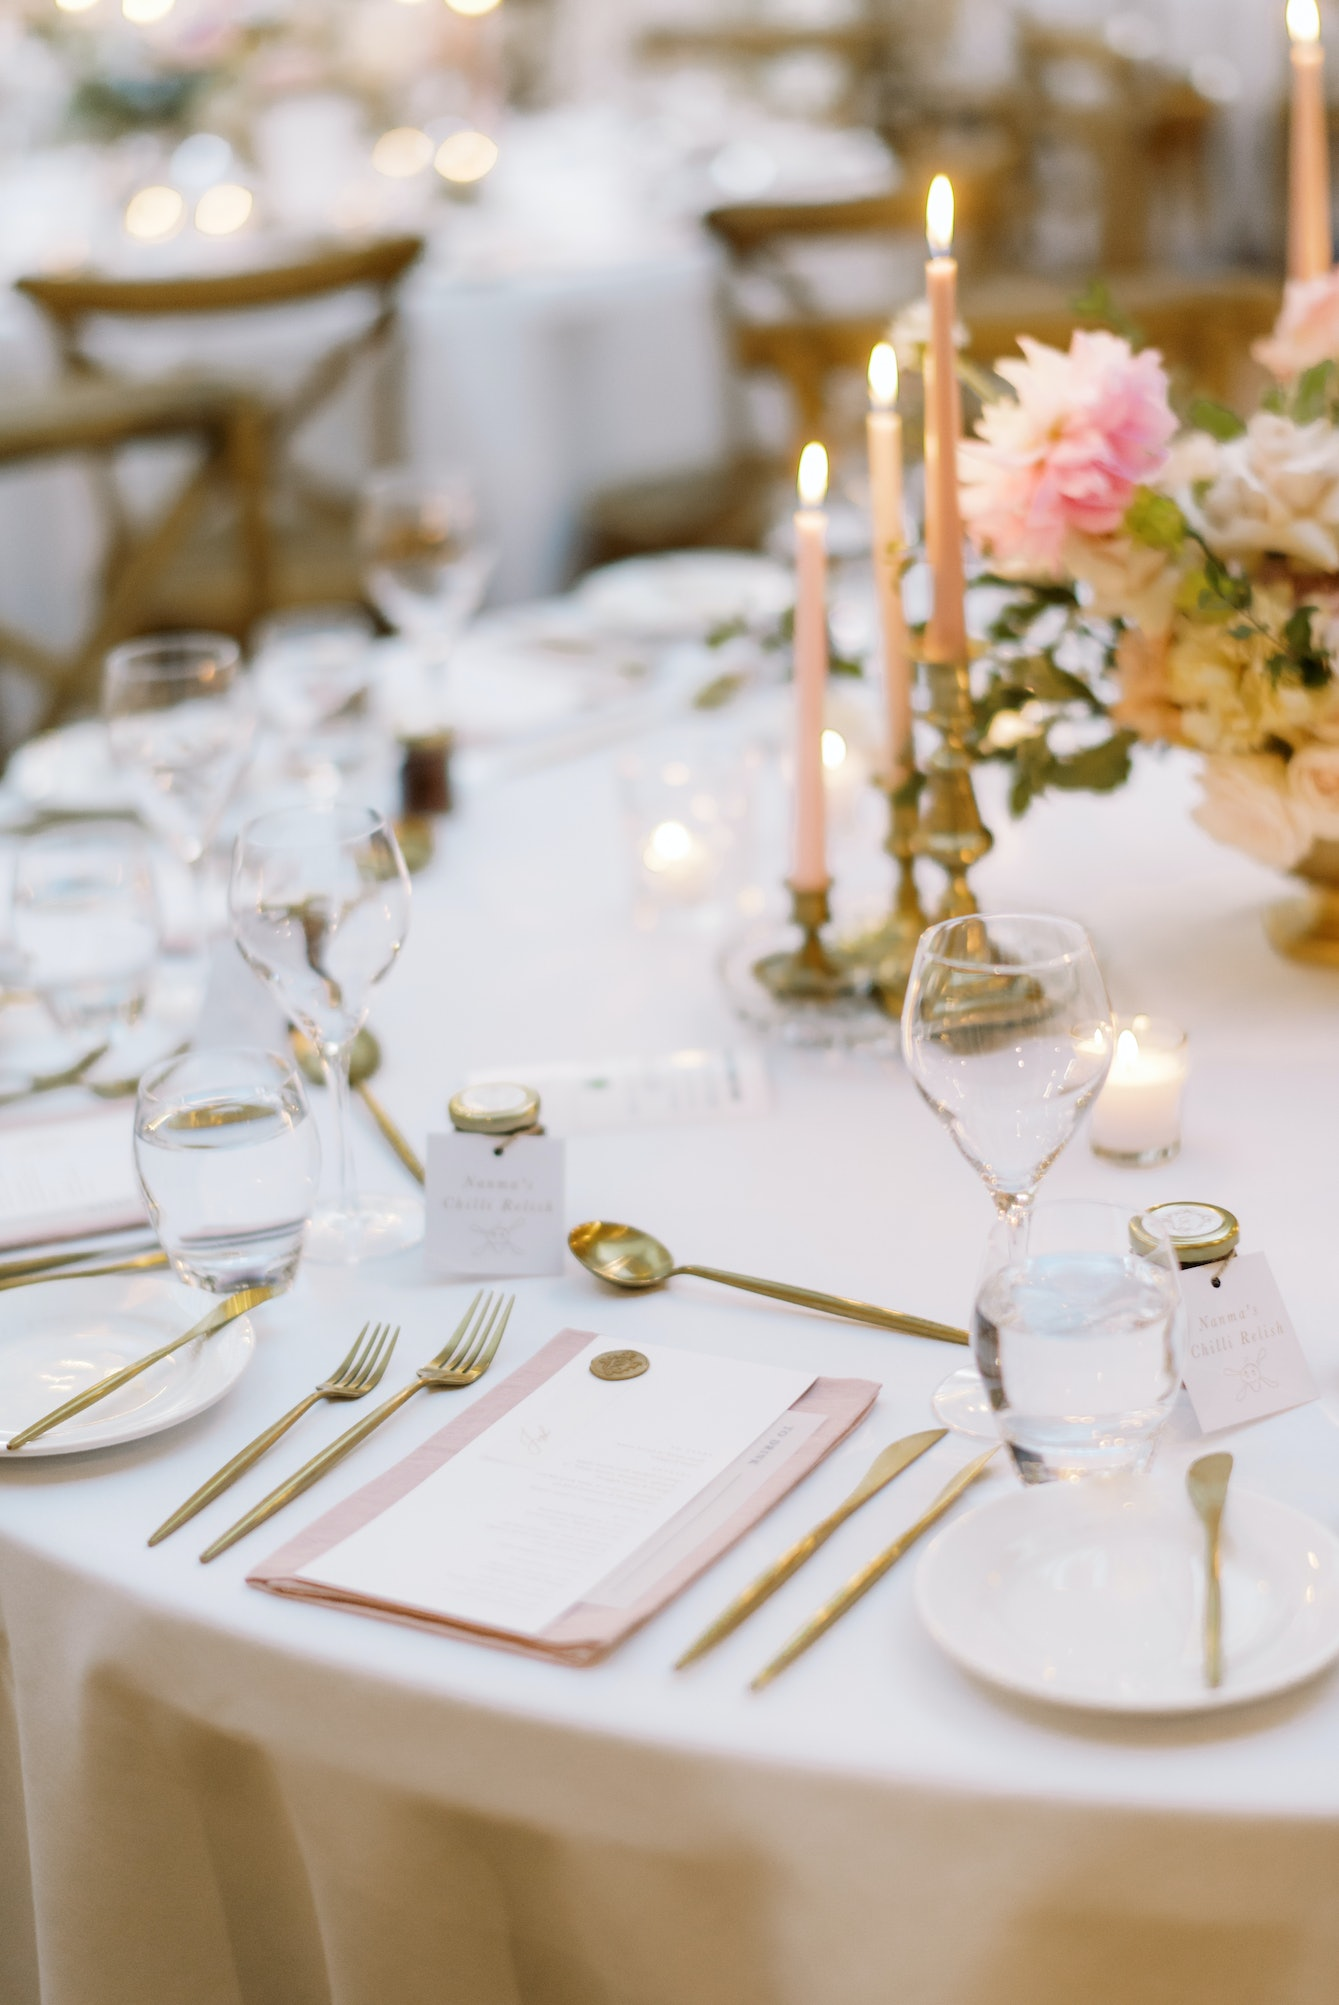 Wedding reception table menus and place settings